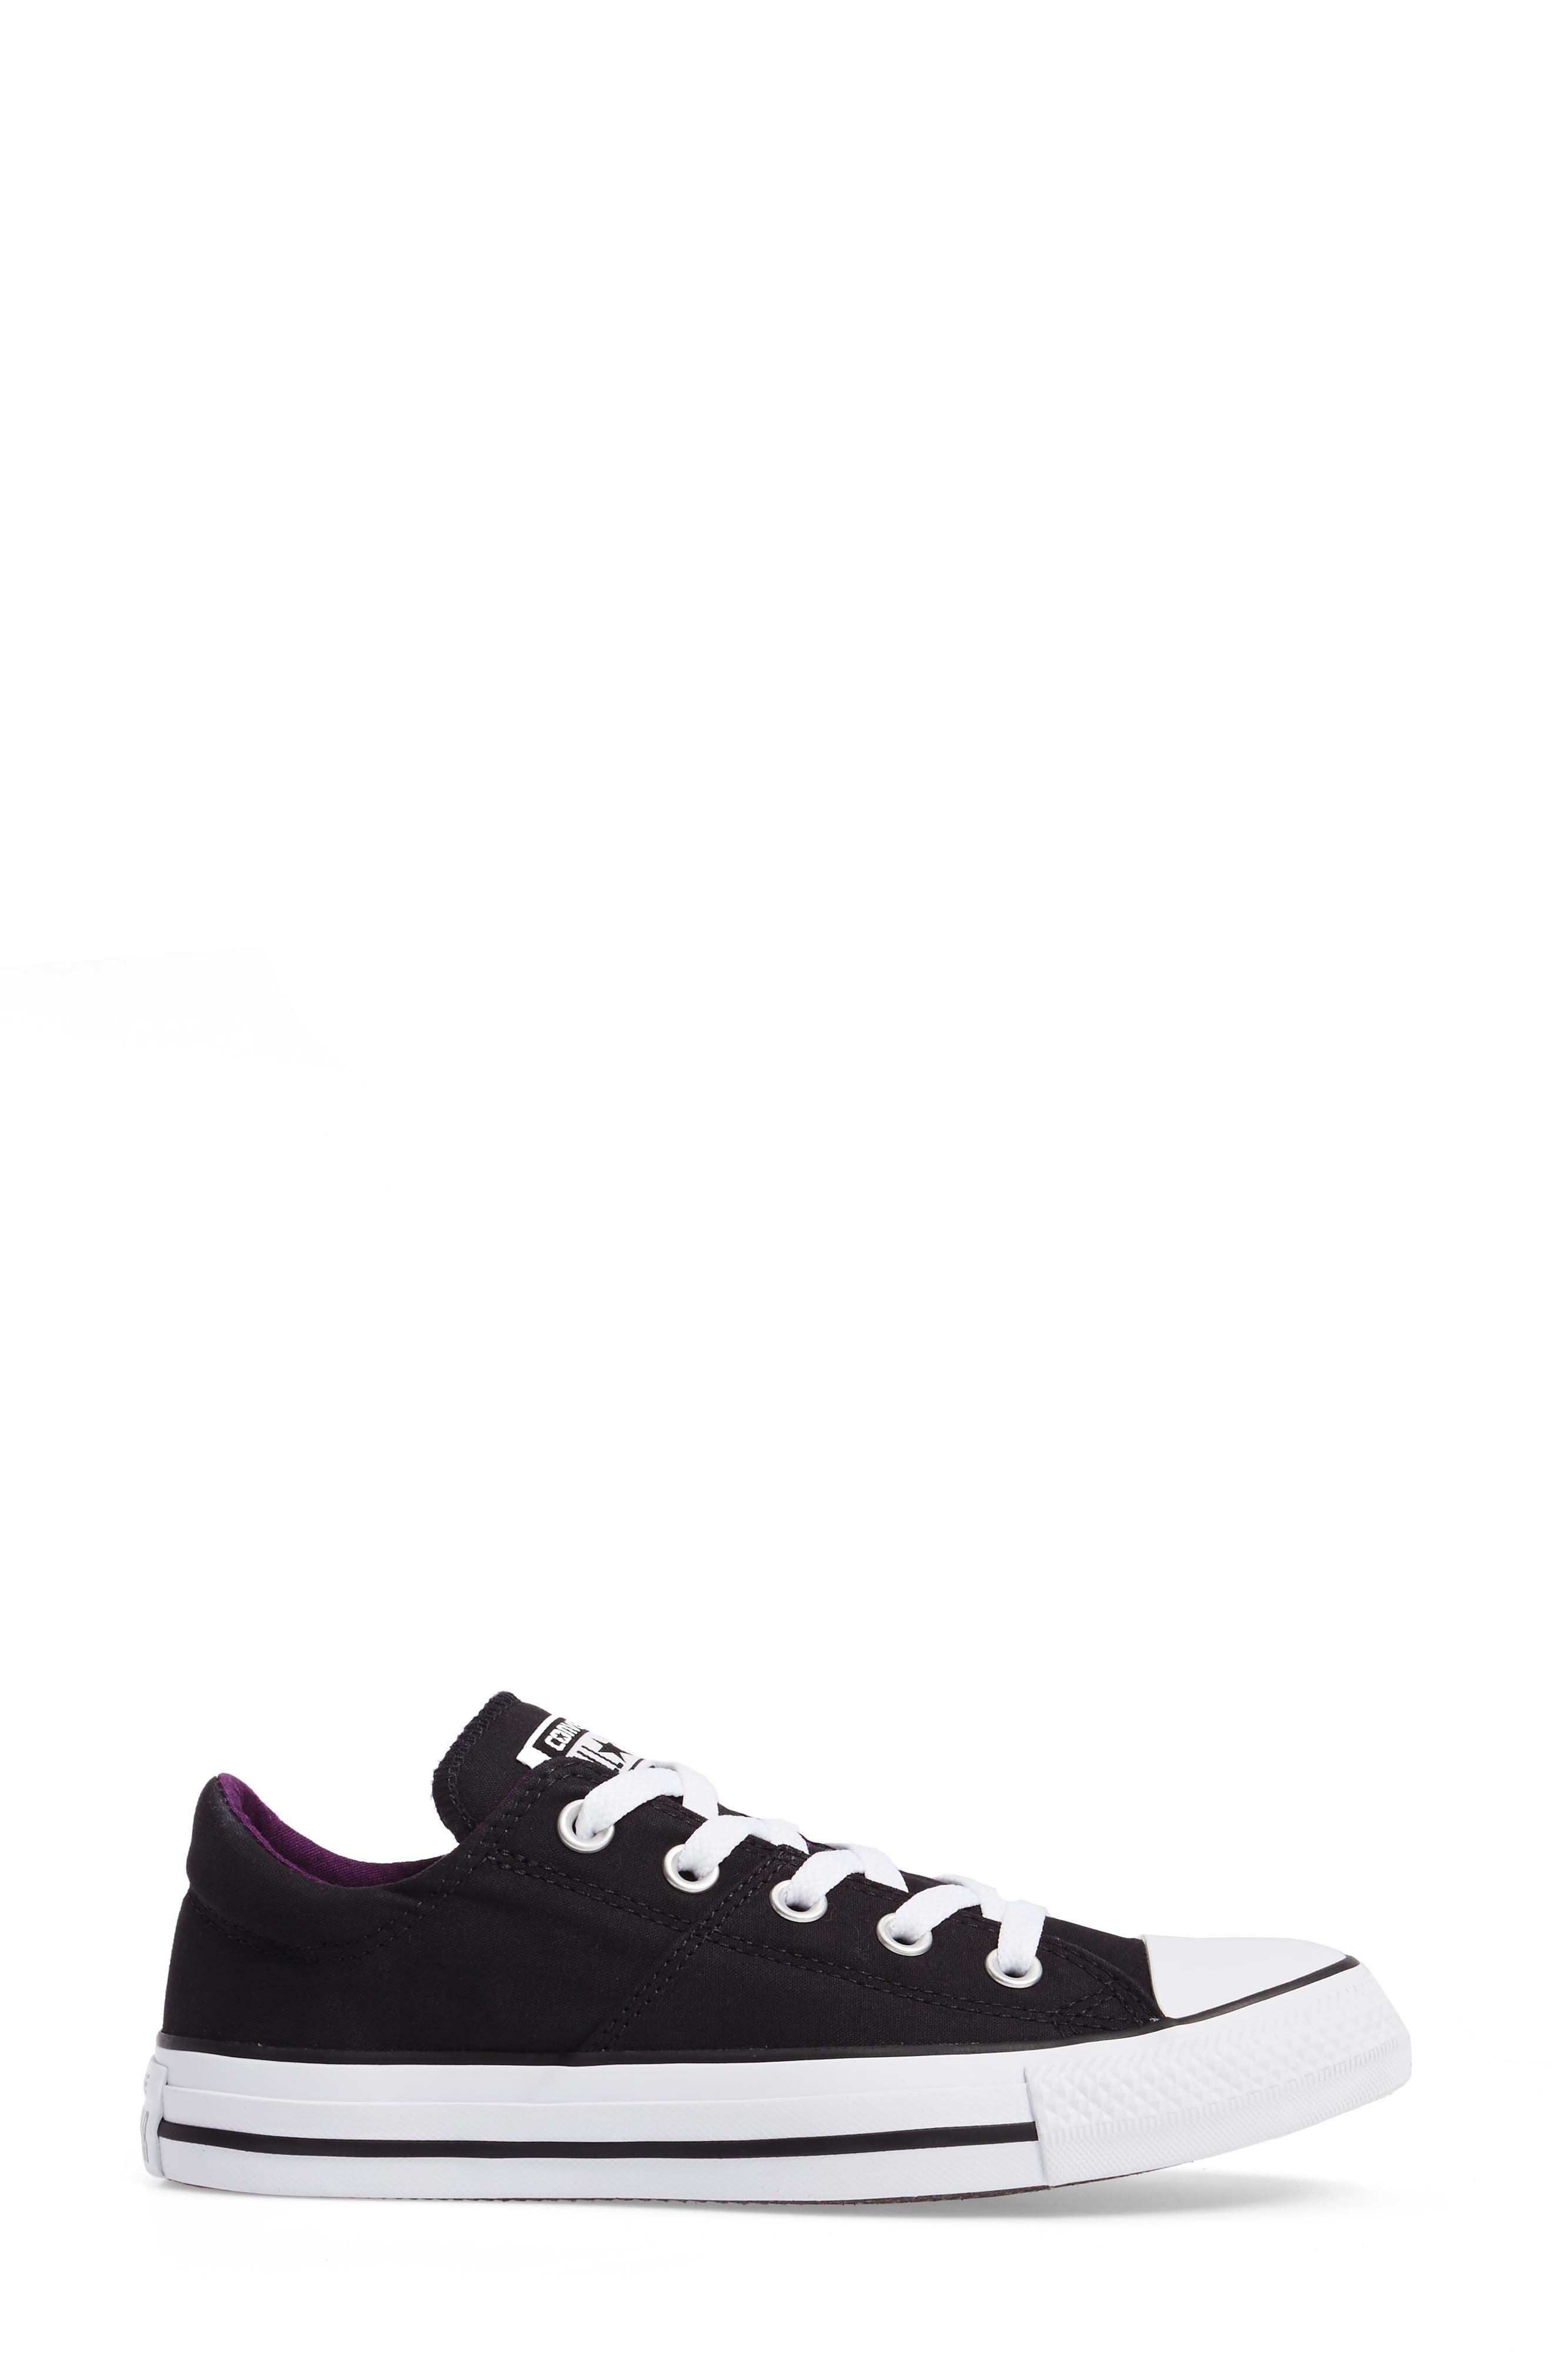 Chuck Taylor<sup>®</sup> All Star<sup>®</sup> Madison Low Top Sneaker,                             Alternate thumbnail 3, color,                             002